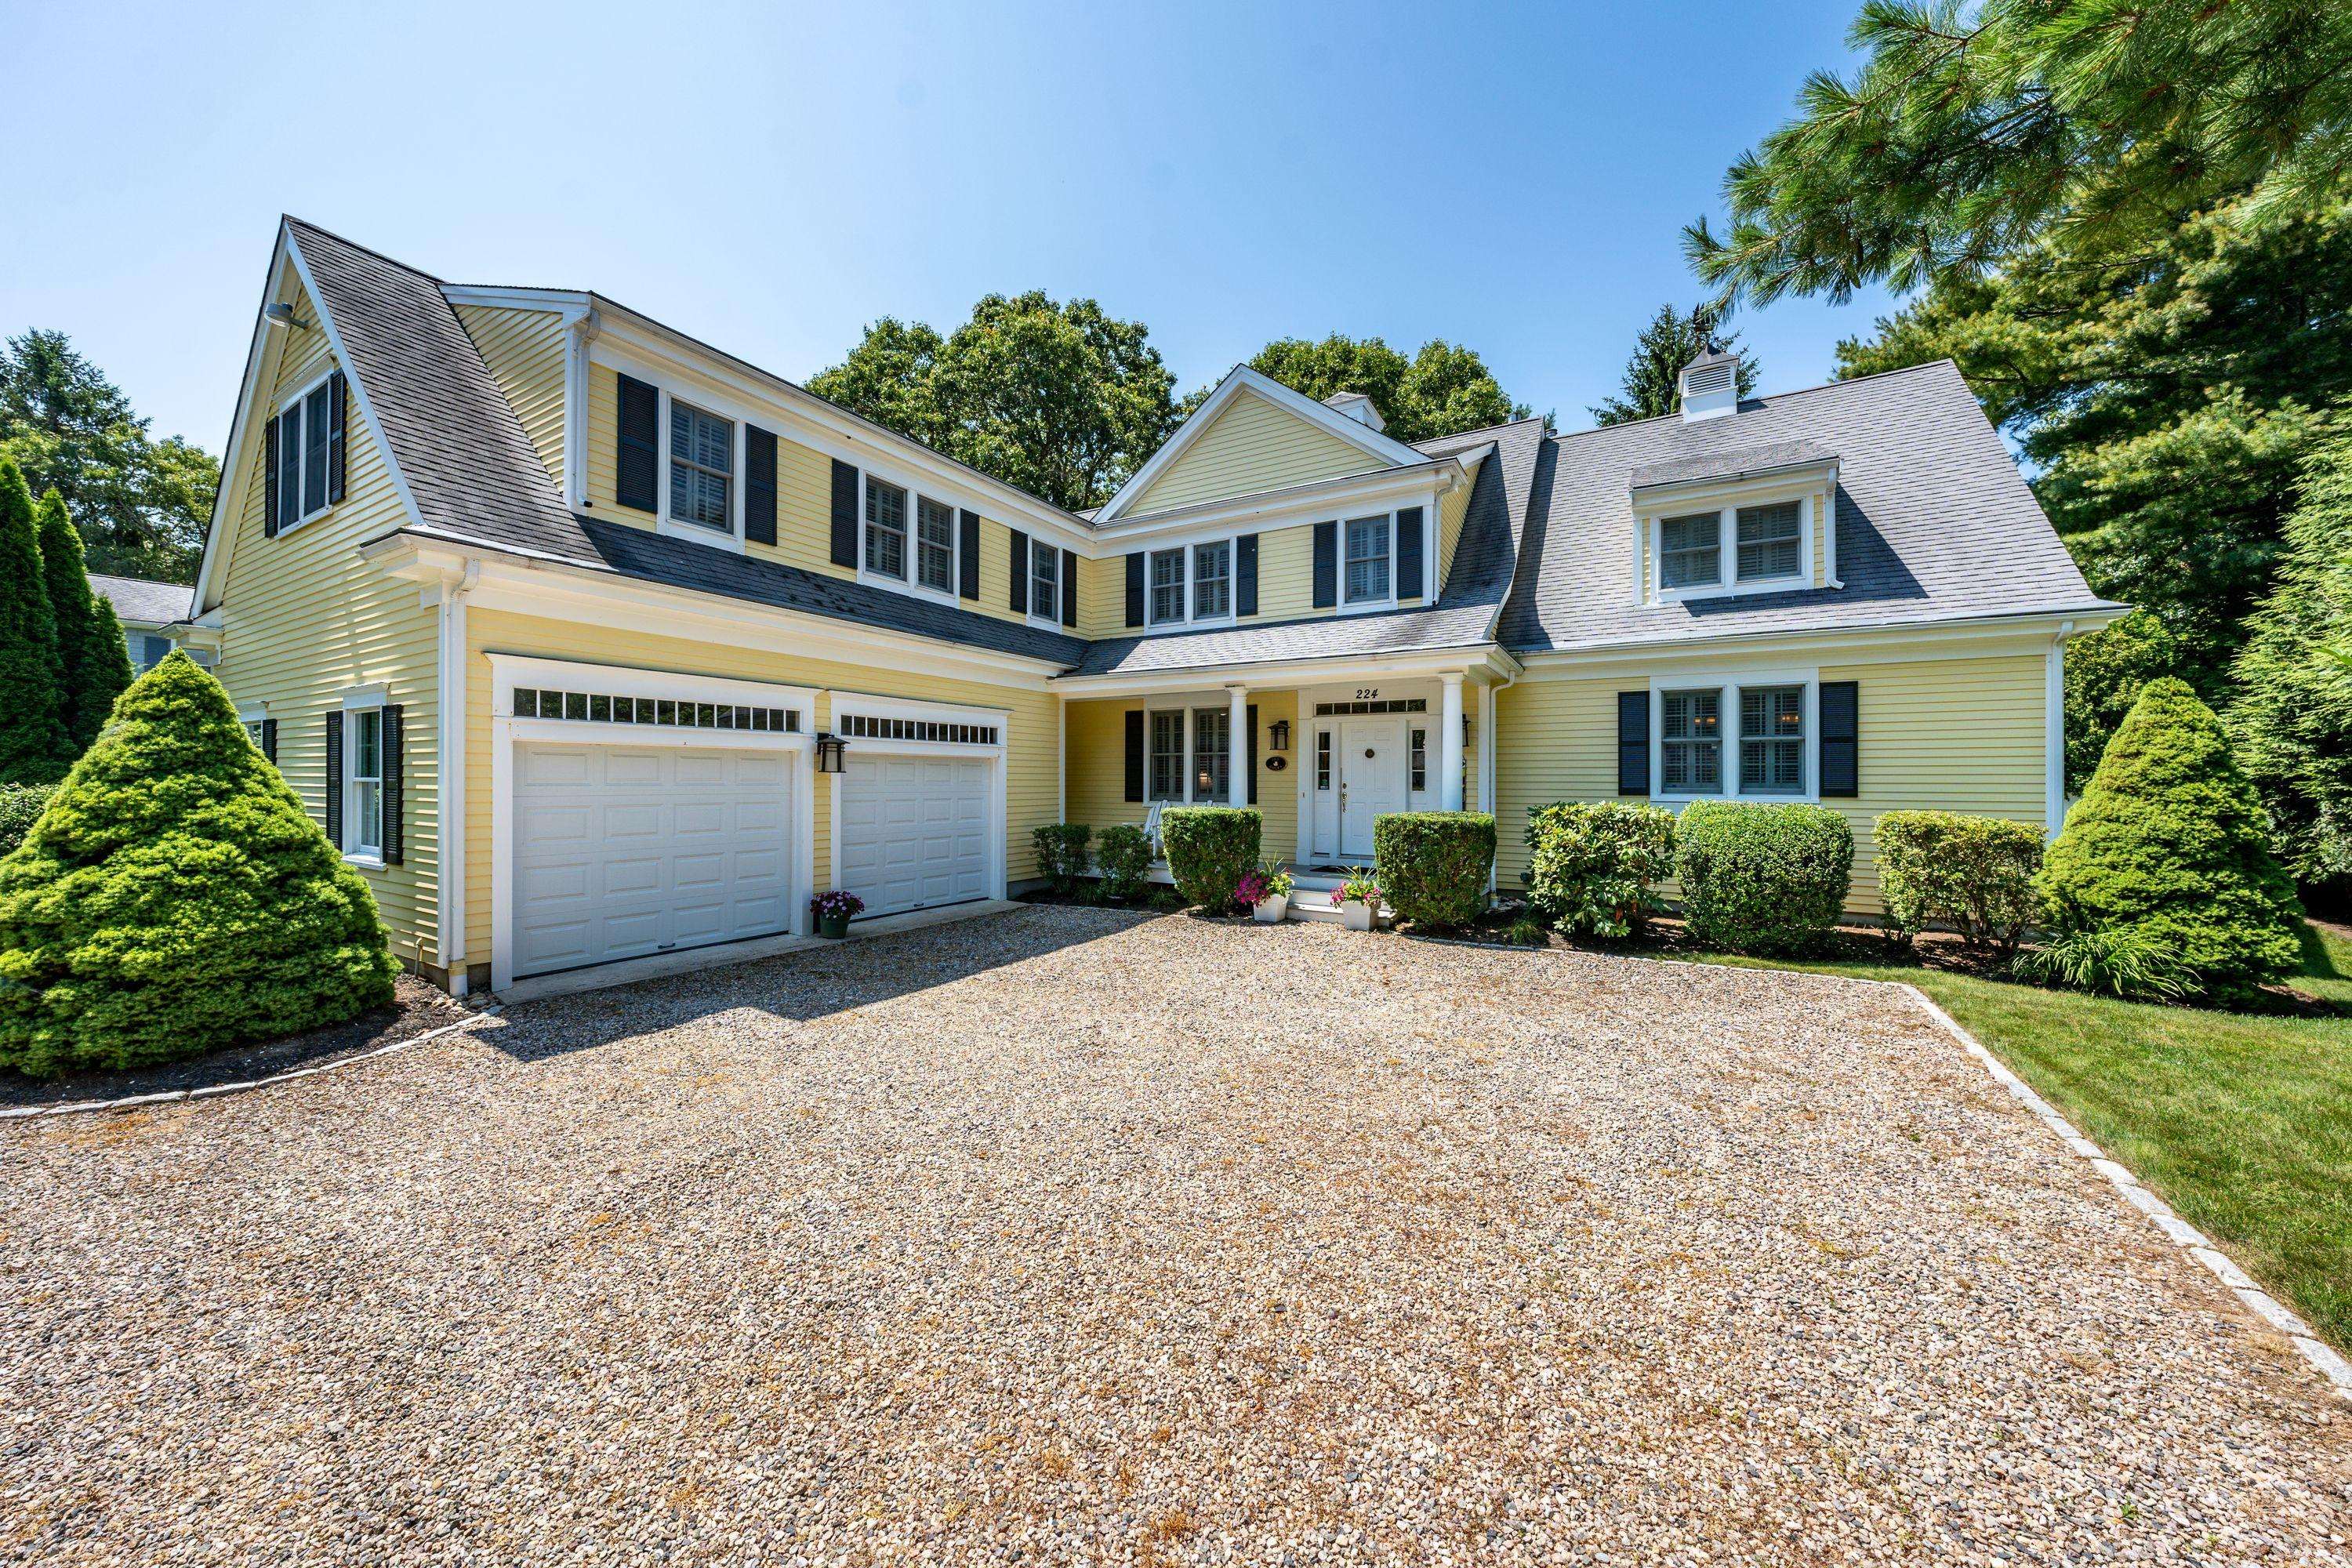 224 Wianno Circle, Osterville MA, 02655 details